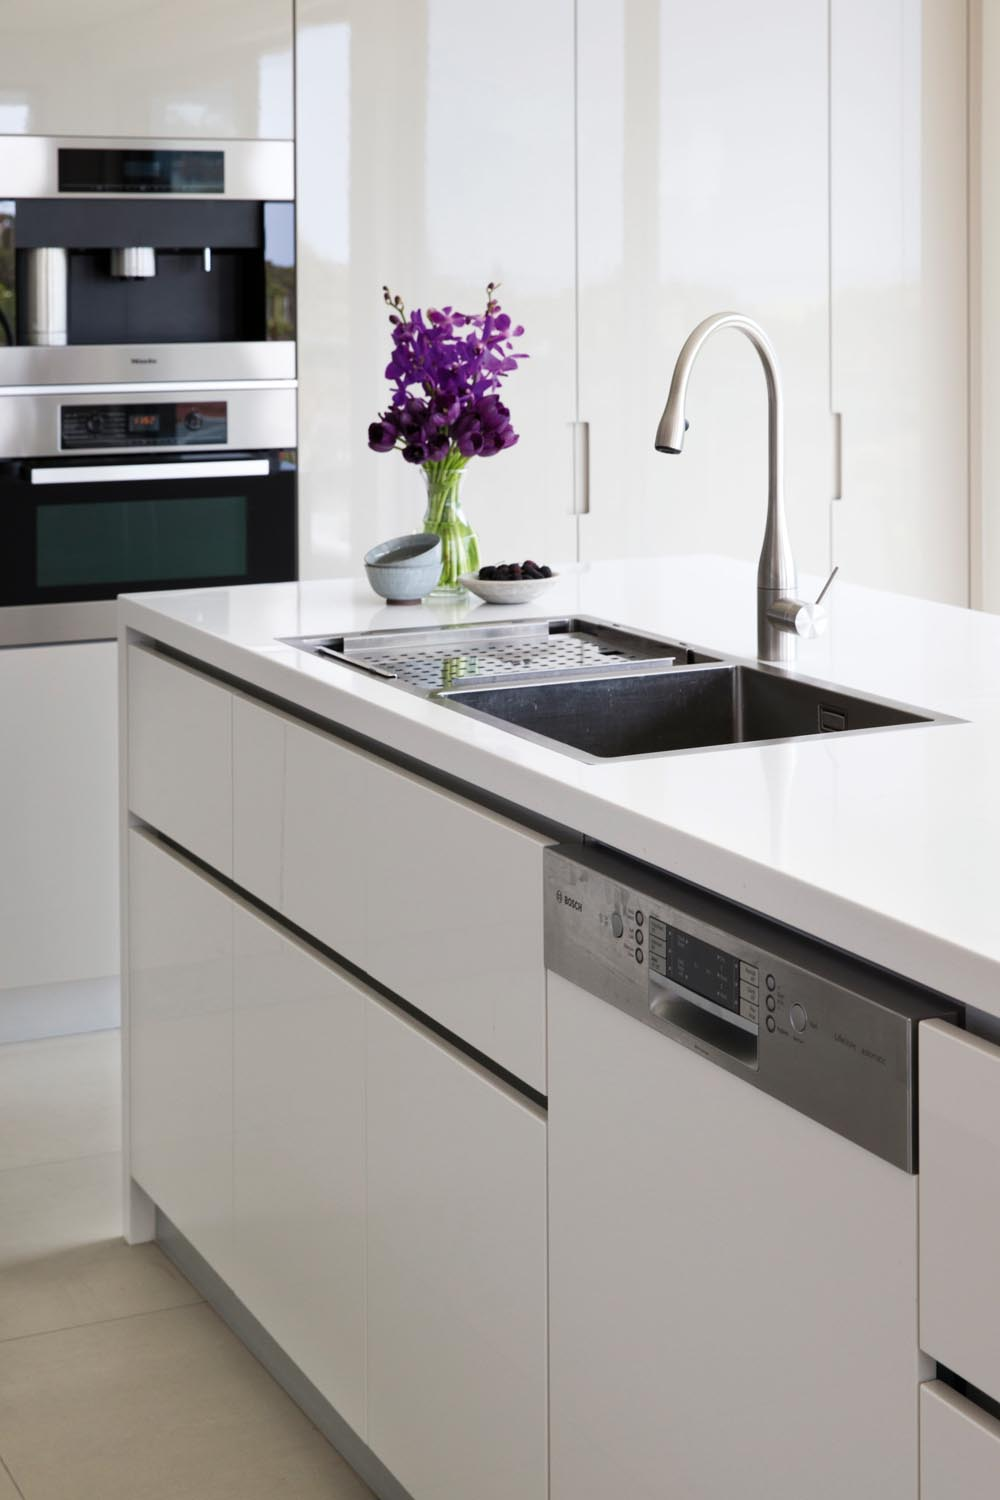 A white modern sink with bright flowers